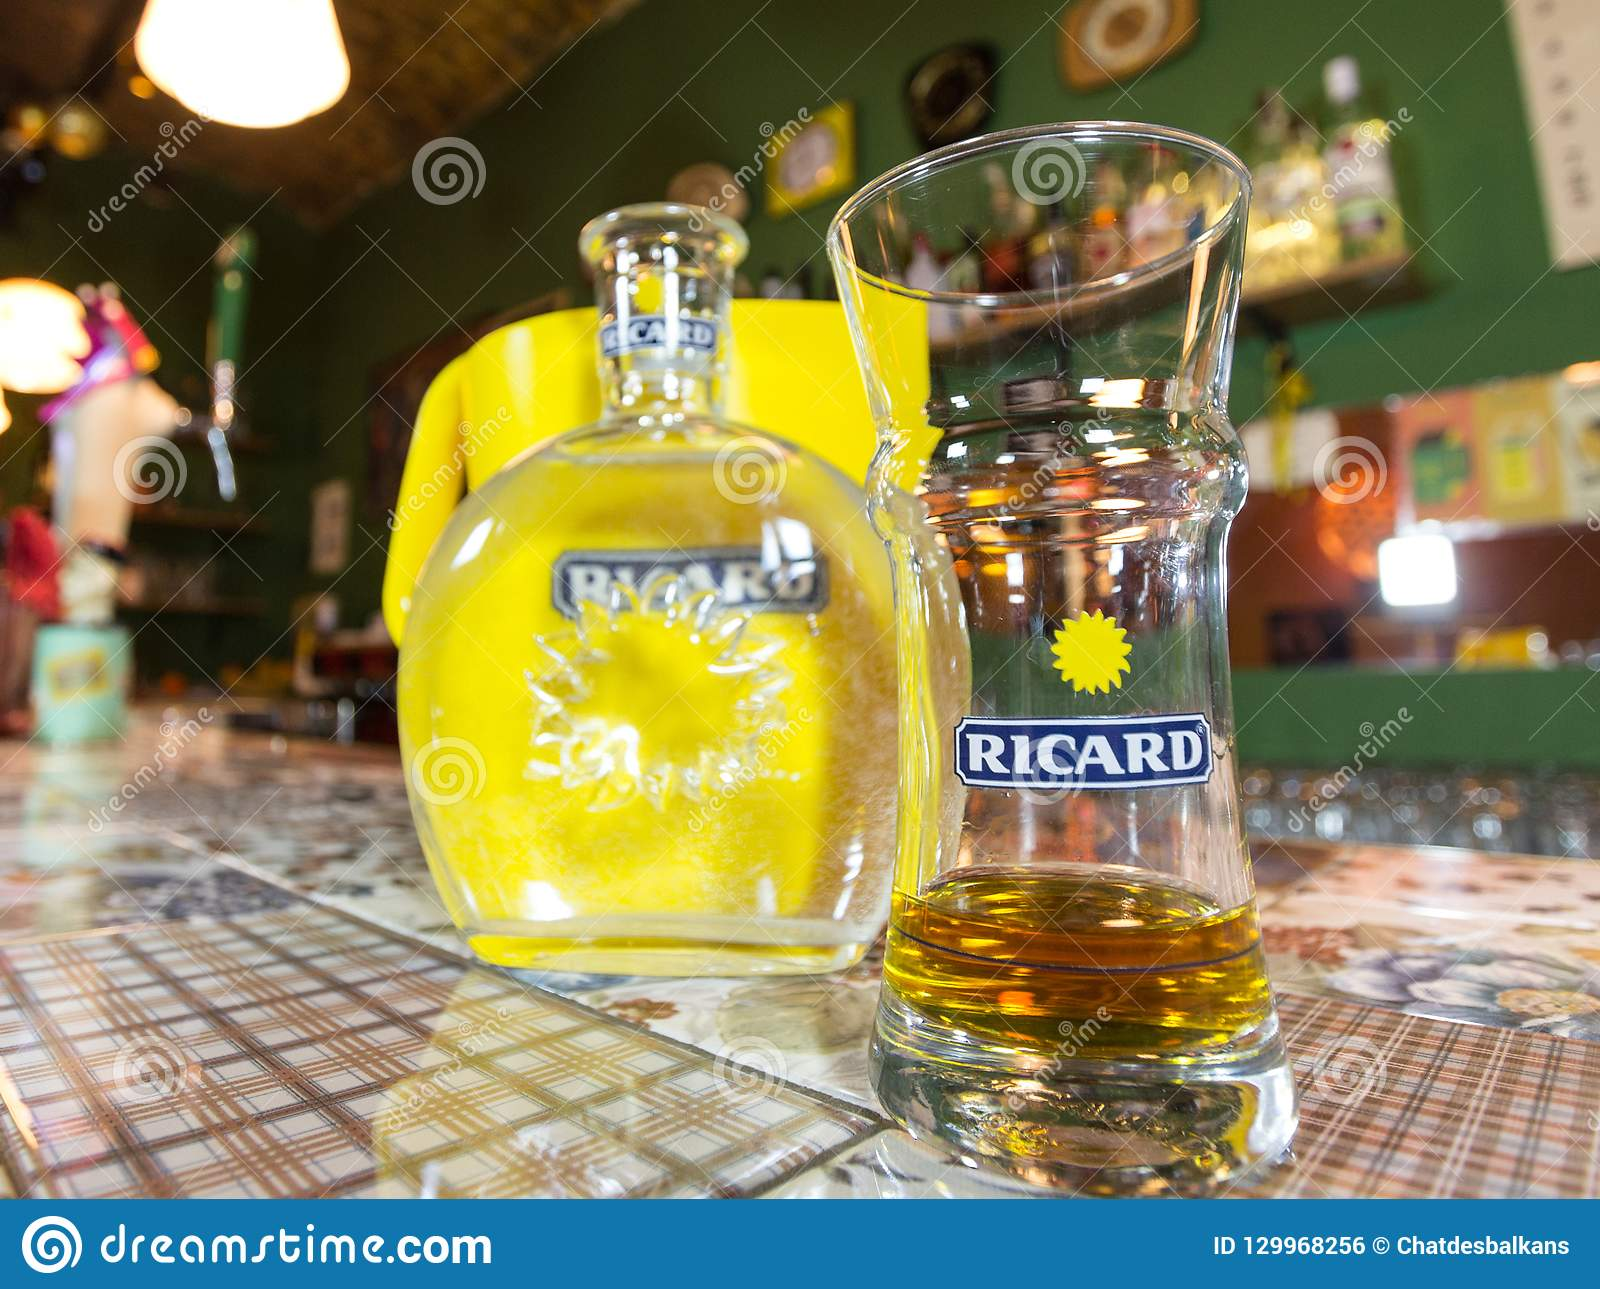 Close of on a Ricard jug and a water bottle with its logo. Ricard is a pastis, an anise and licorice flavored aperitif